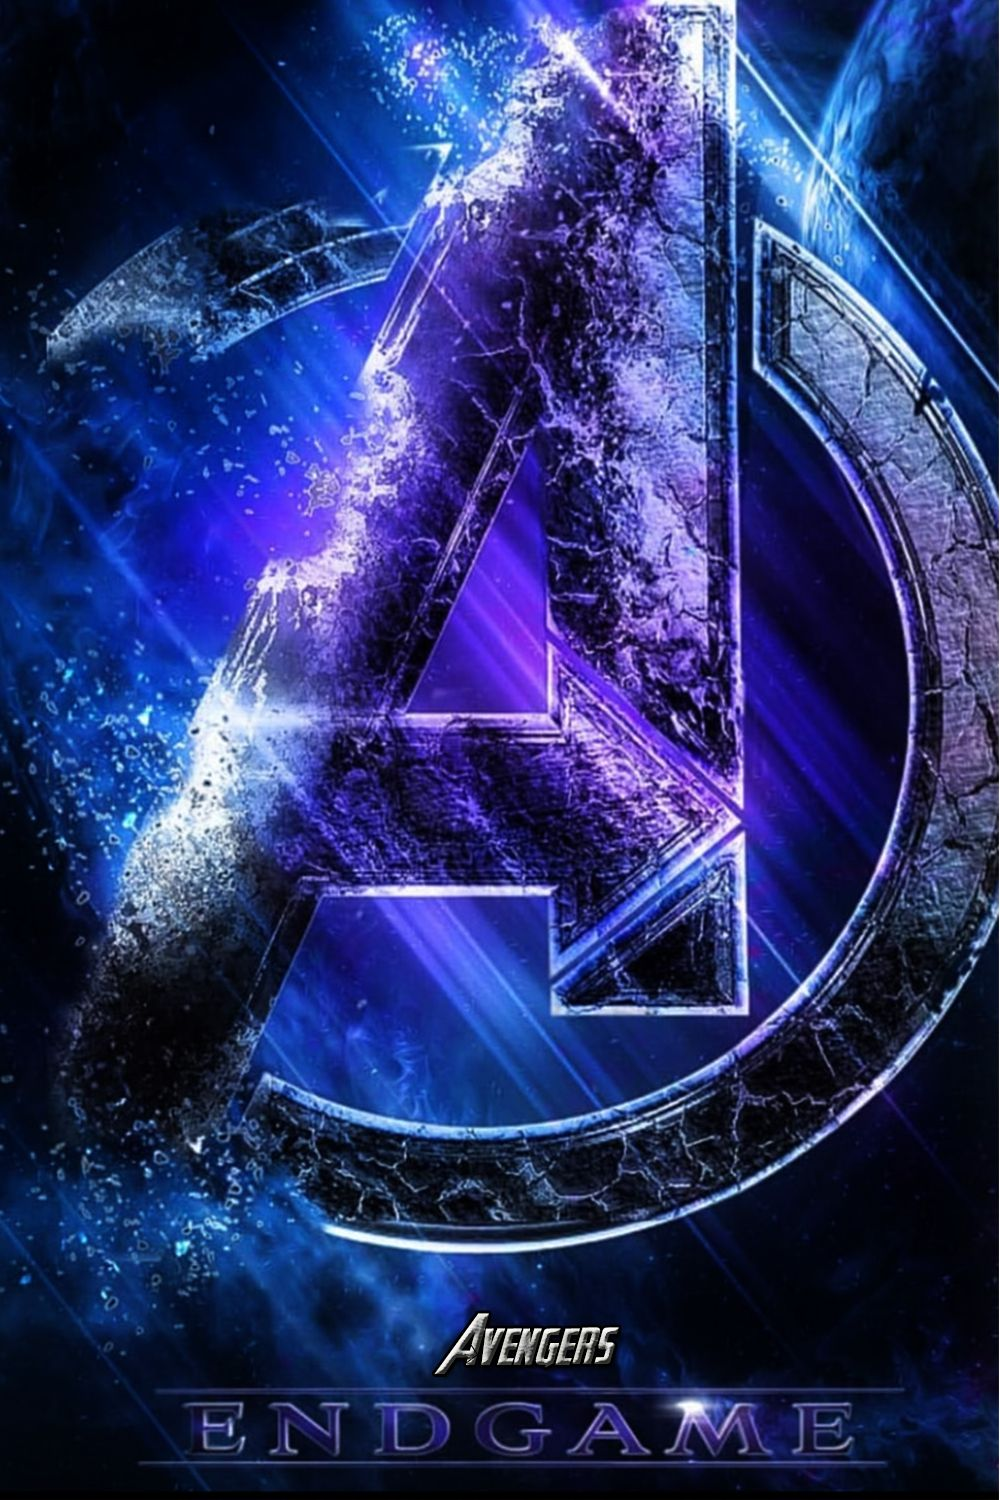 Visit Now Free Download Best Avengers Wallpaper 4k Avengers